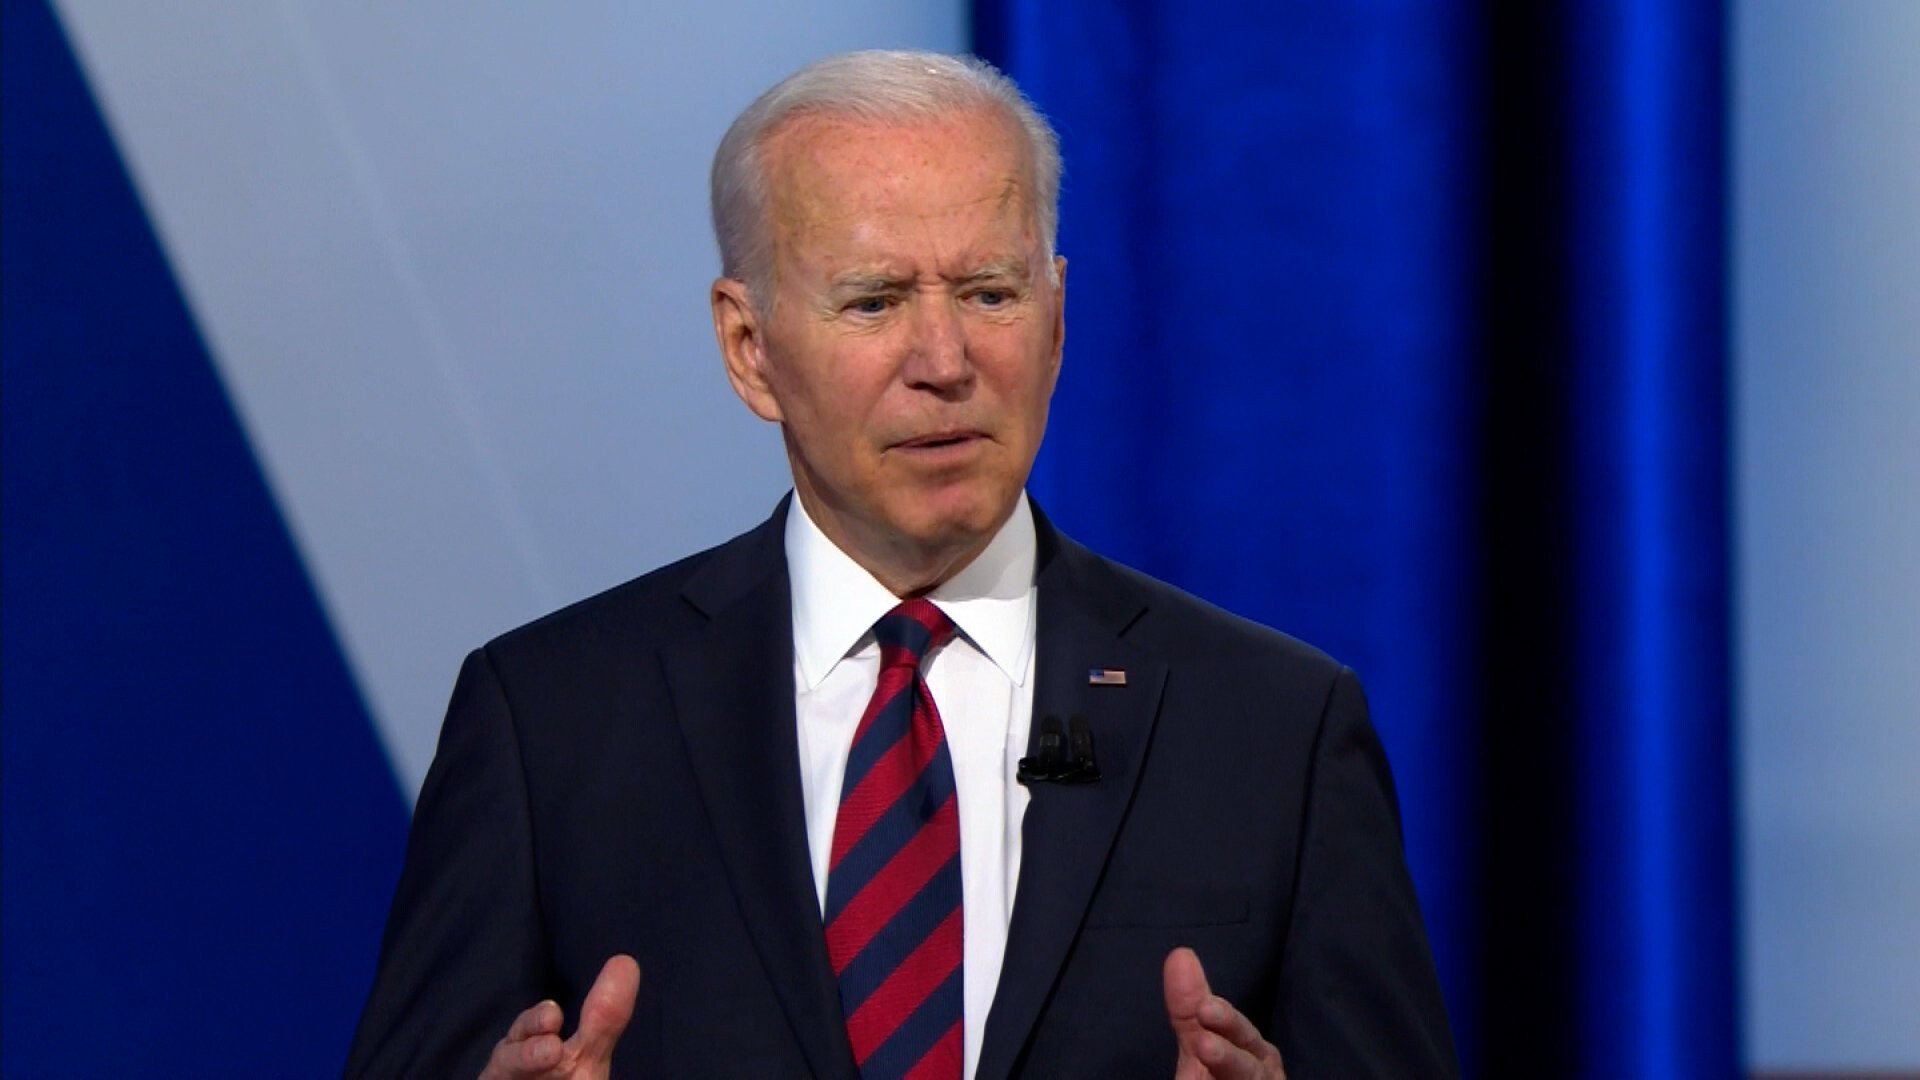 Biden slams attempts to curb voting rights but says he isn't ready to call for an end of the filibuster